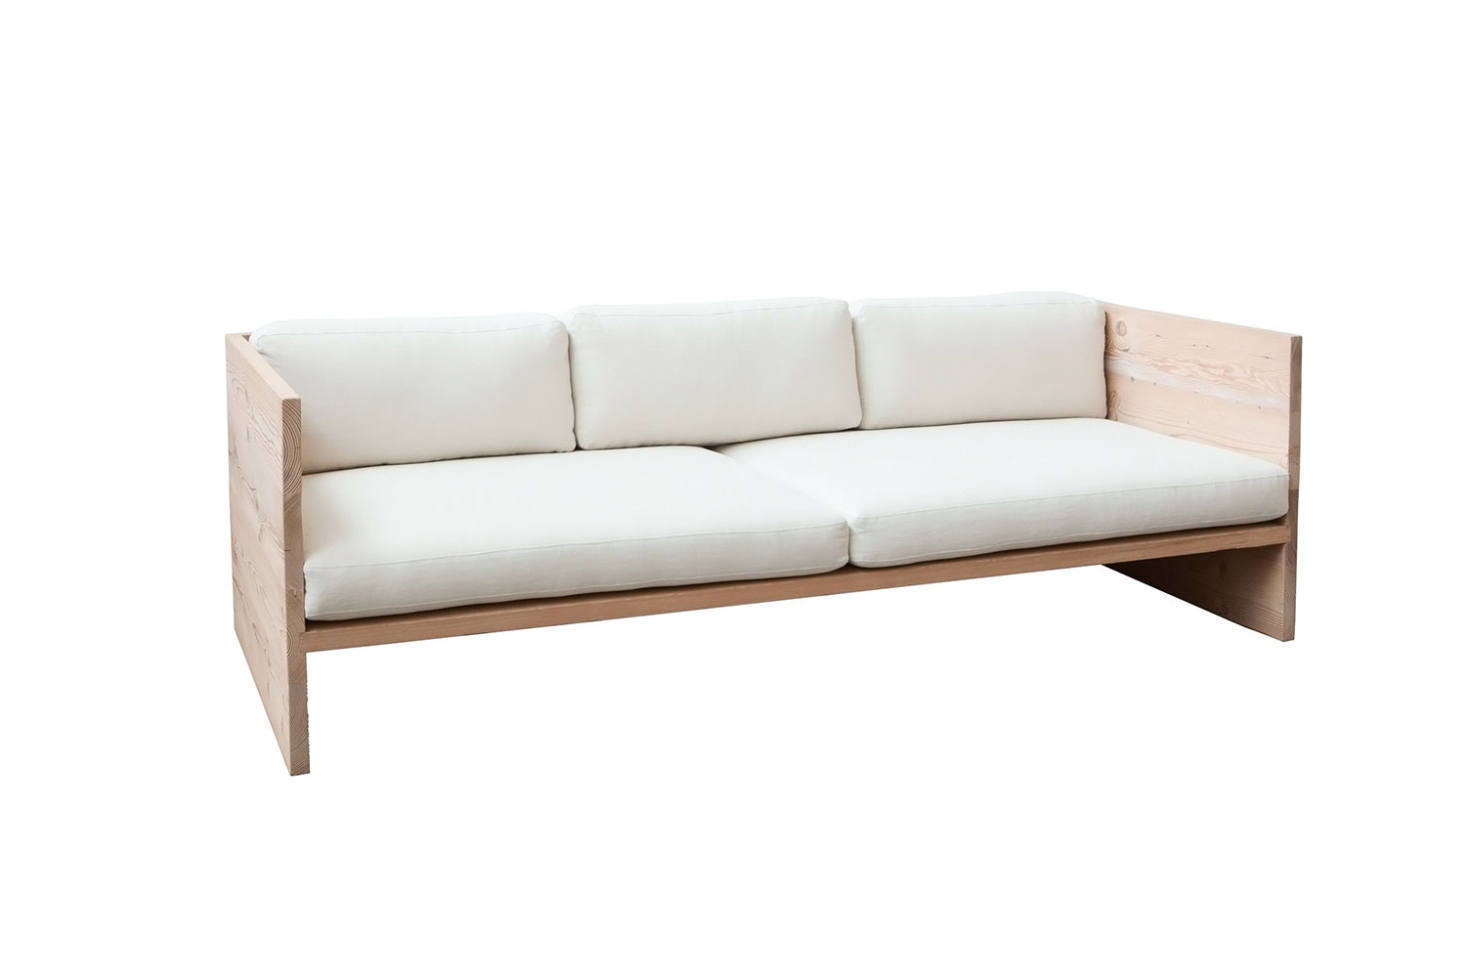 10 Easy Pieces Modern Wood Frame Sofas